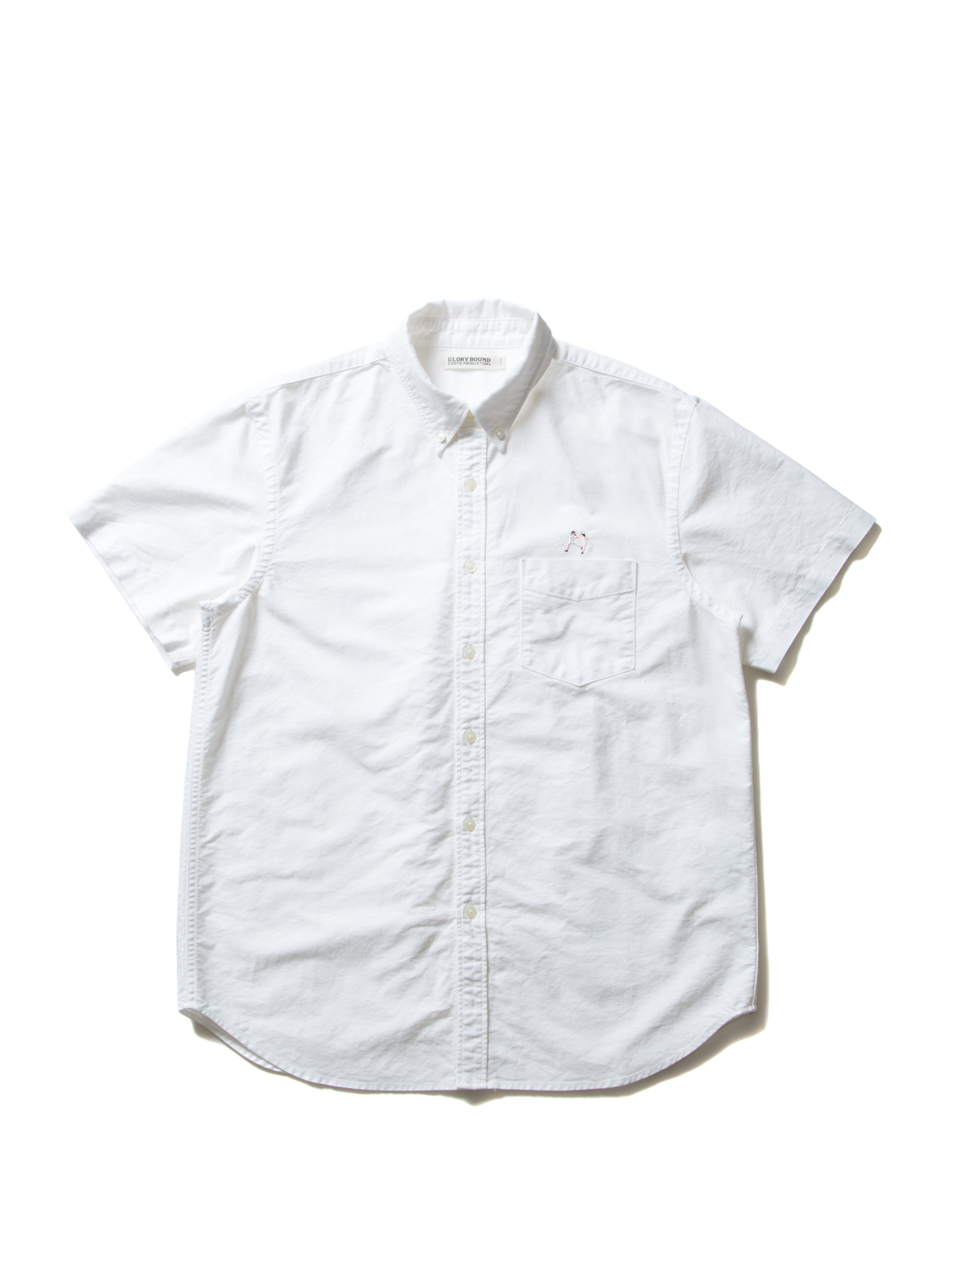 07c91bdd42857 COOTIE   Oxford S S Button Down Shirt (KUNG-FU) □MATERIAL COTTON 100%  □COLOR OFF-WHITE